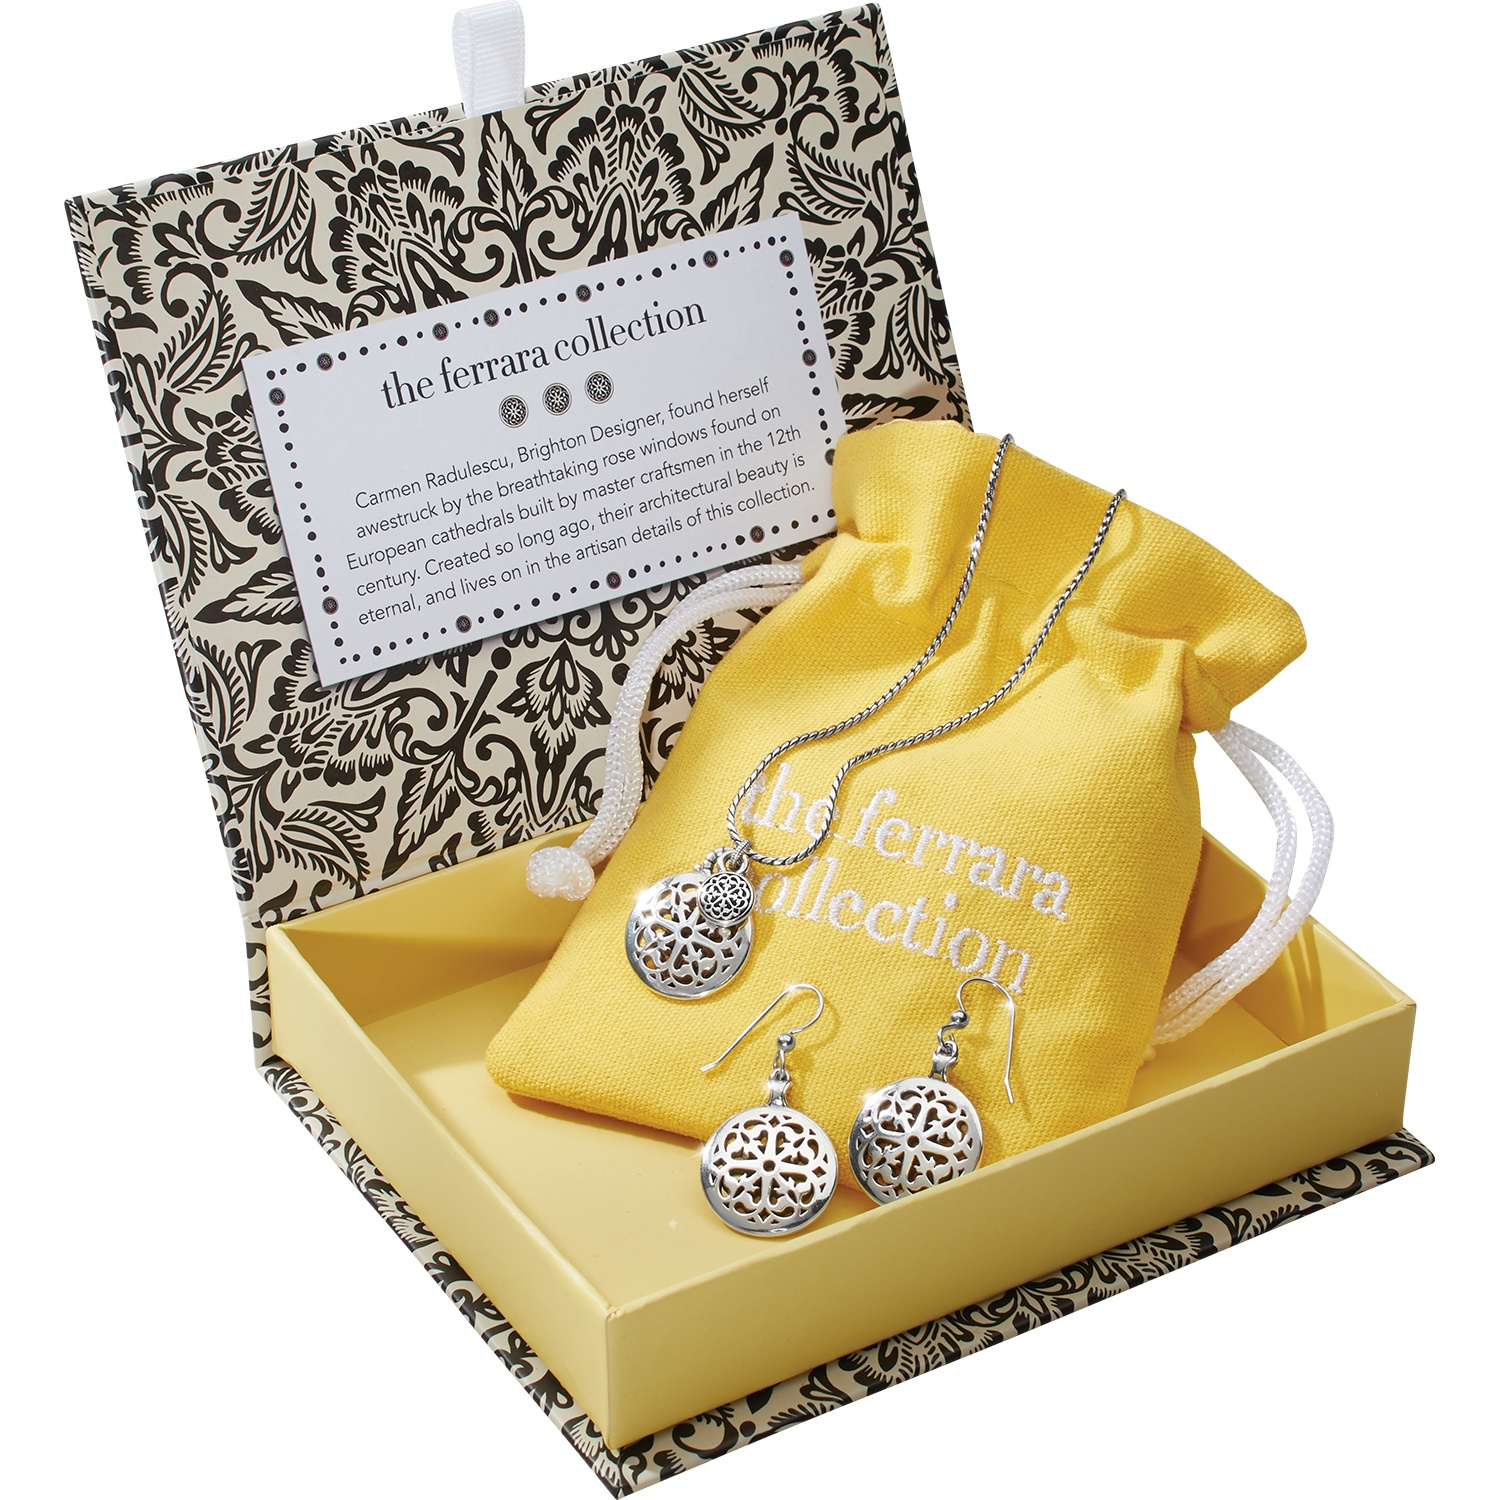 Boxed jewelry sets jewelry box sets brighton collectibles gifts from the heart the artist within ferrara collection buycottarizona Gallery